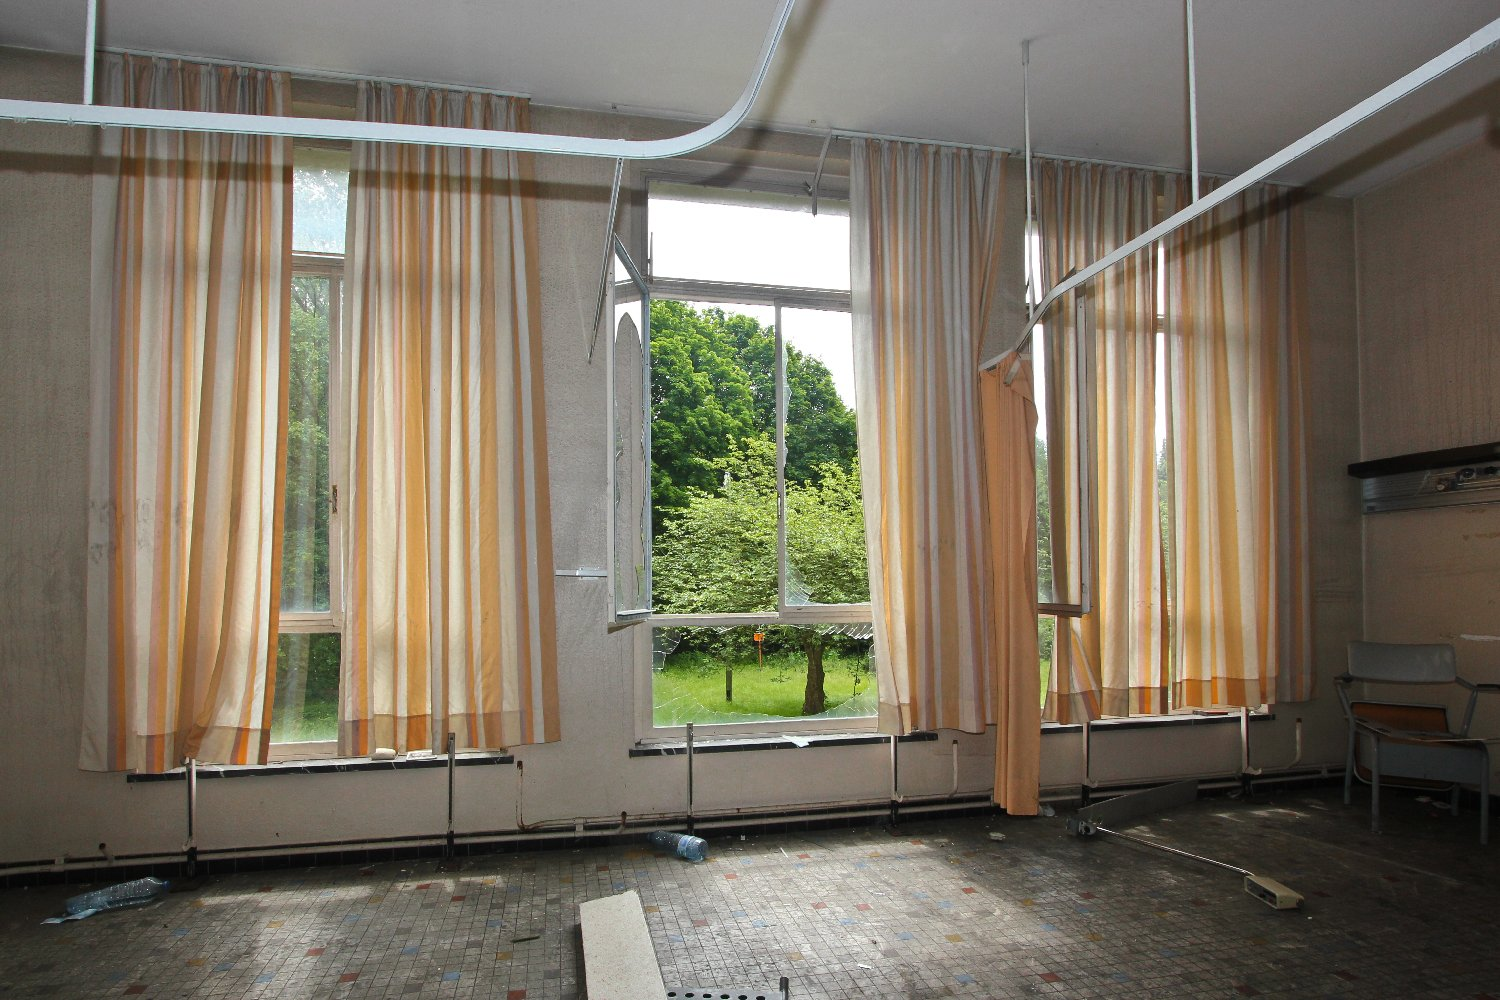 Hospital window curtains - Some Rooms Still Have Their Curtains In Place